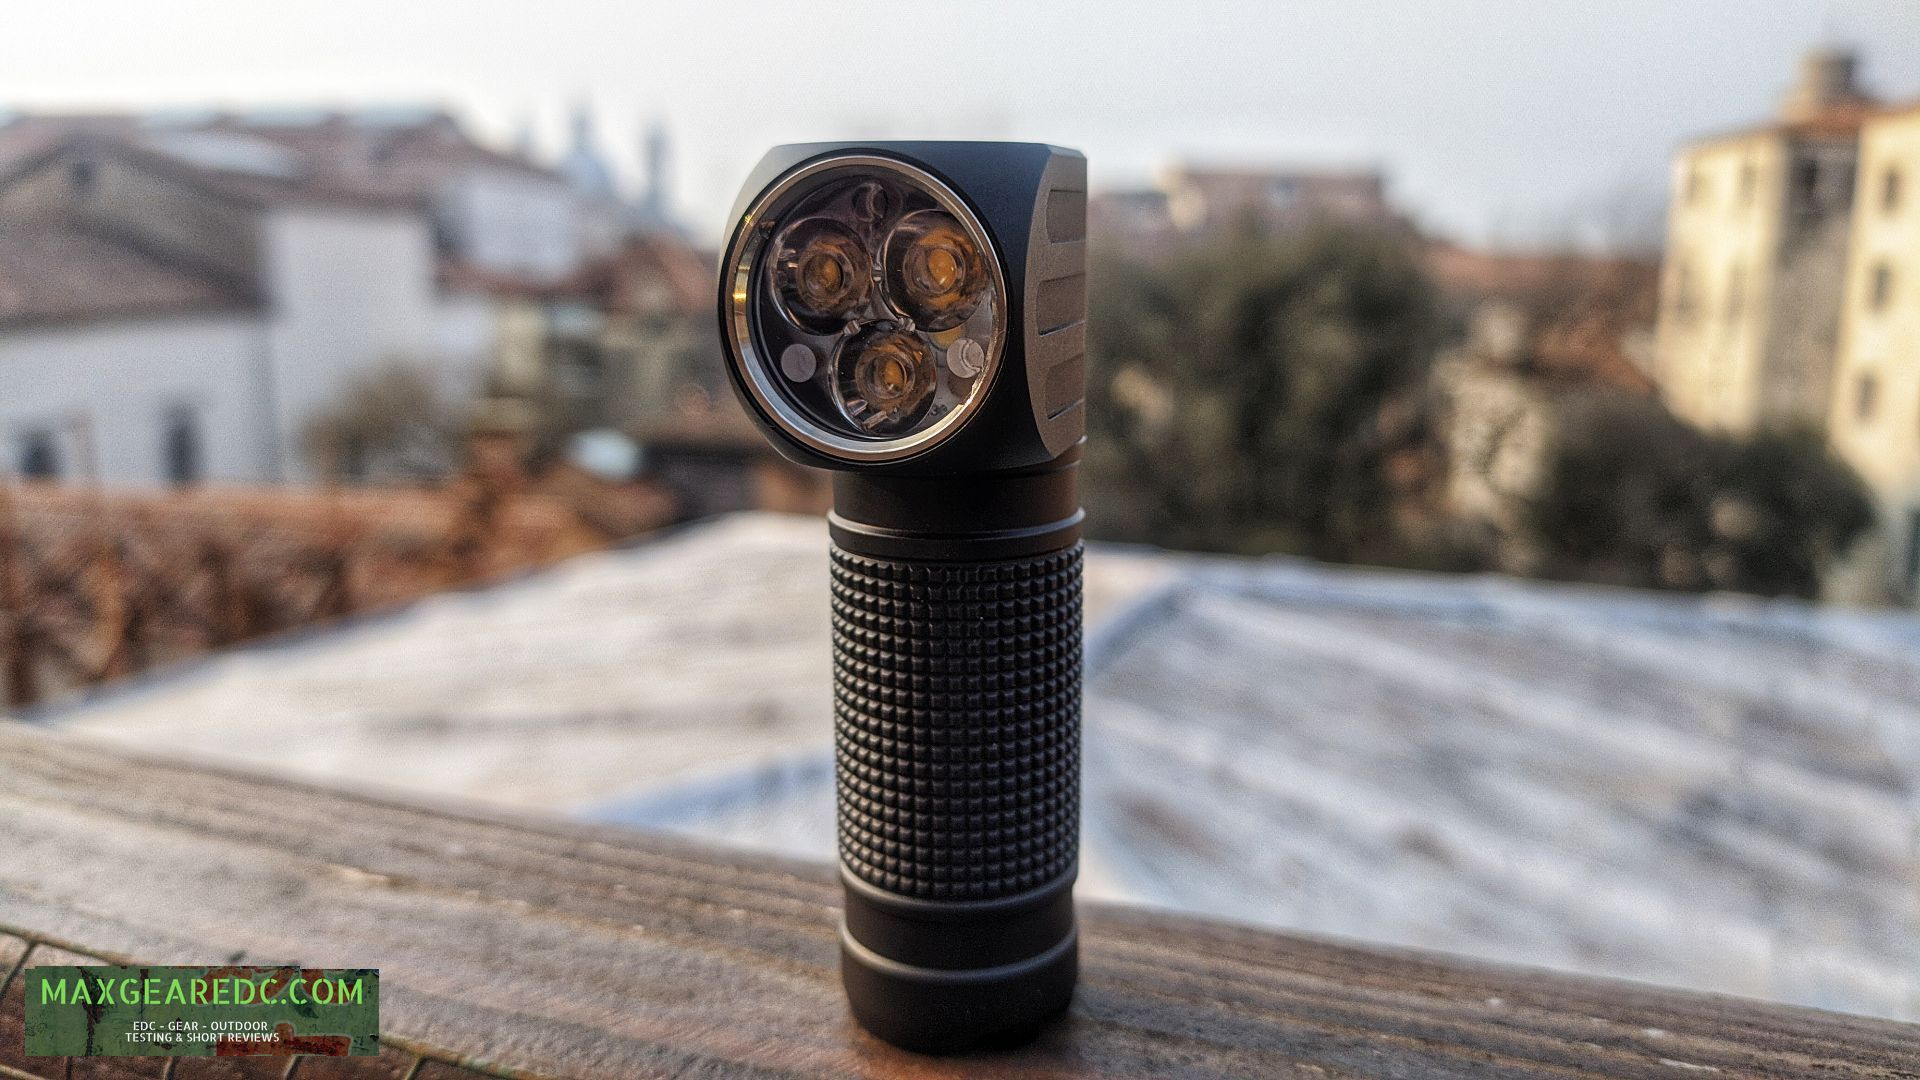 Lumintop_HL3A_Flashlight_Review_SST20_18650_maxgearedc.com_EDC_GEAR_OUTDOOR_TESTING_and_SHORT_REVIEWS_3